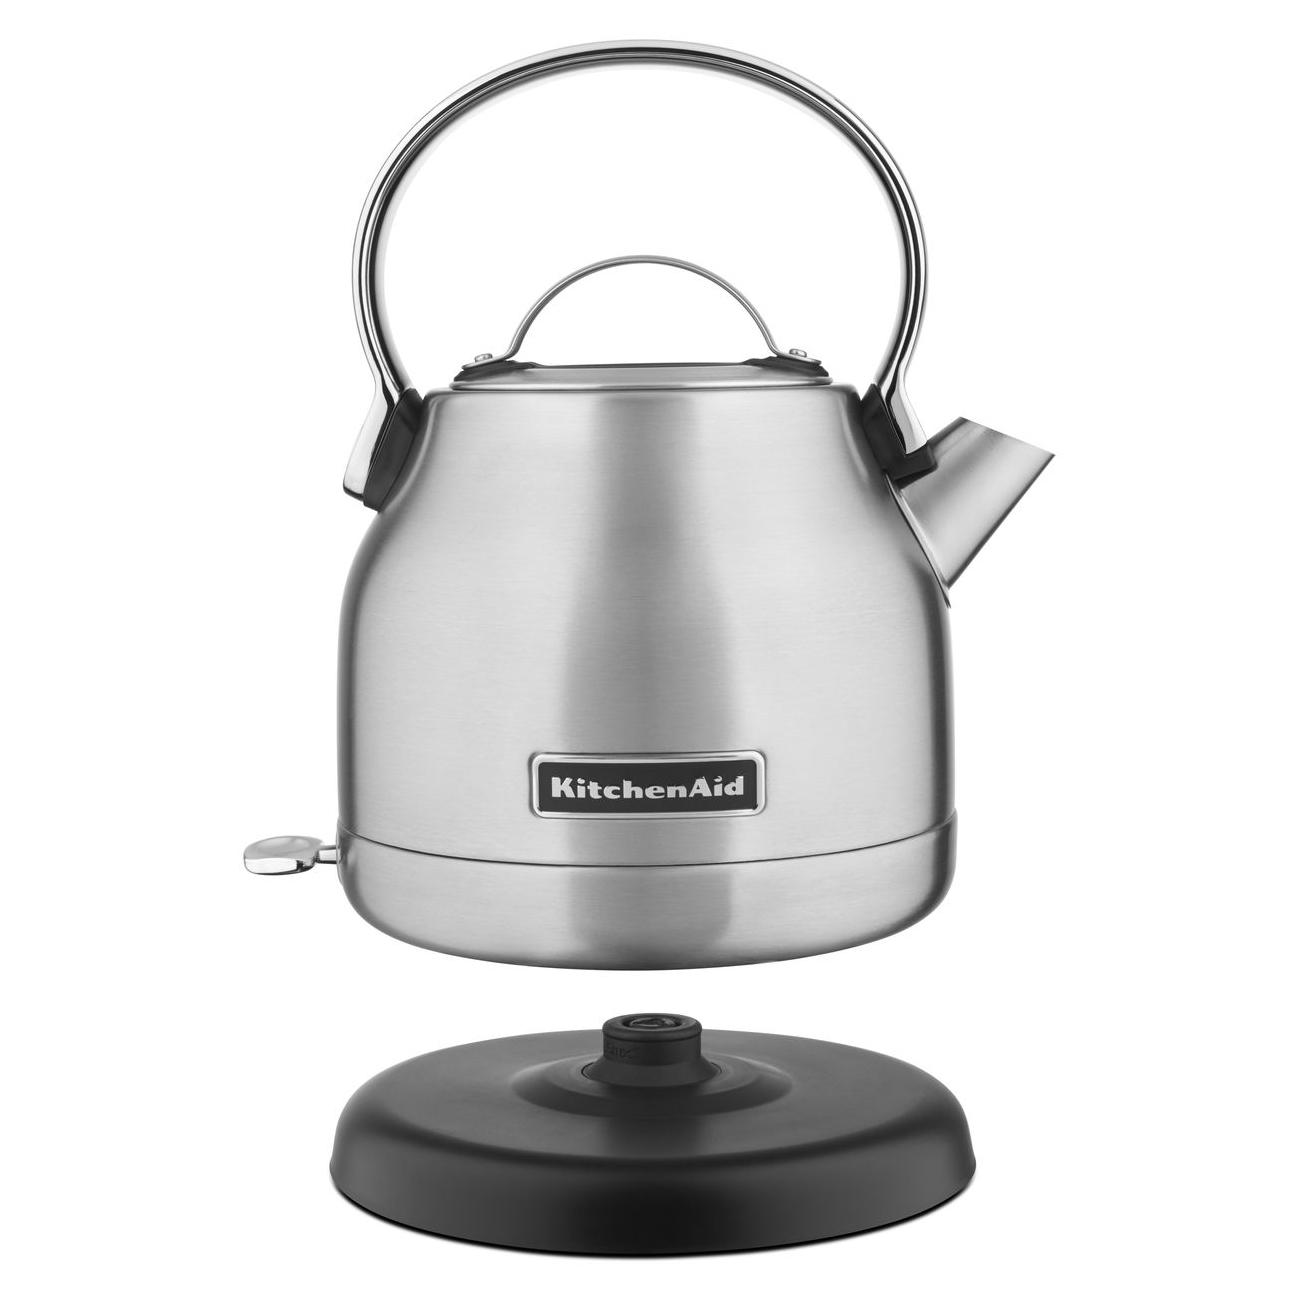 KitchenAid Stainless Steel 1.25 Liter Electric Kettle